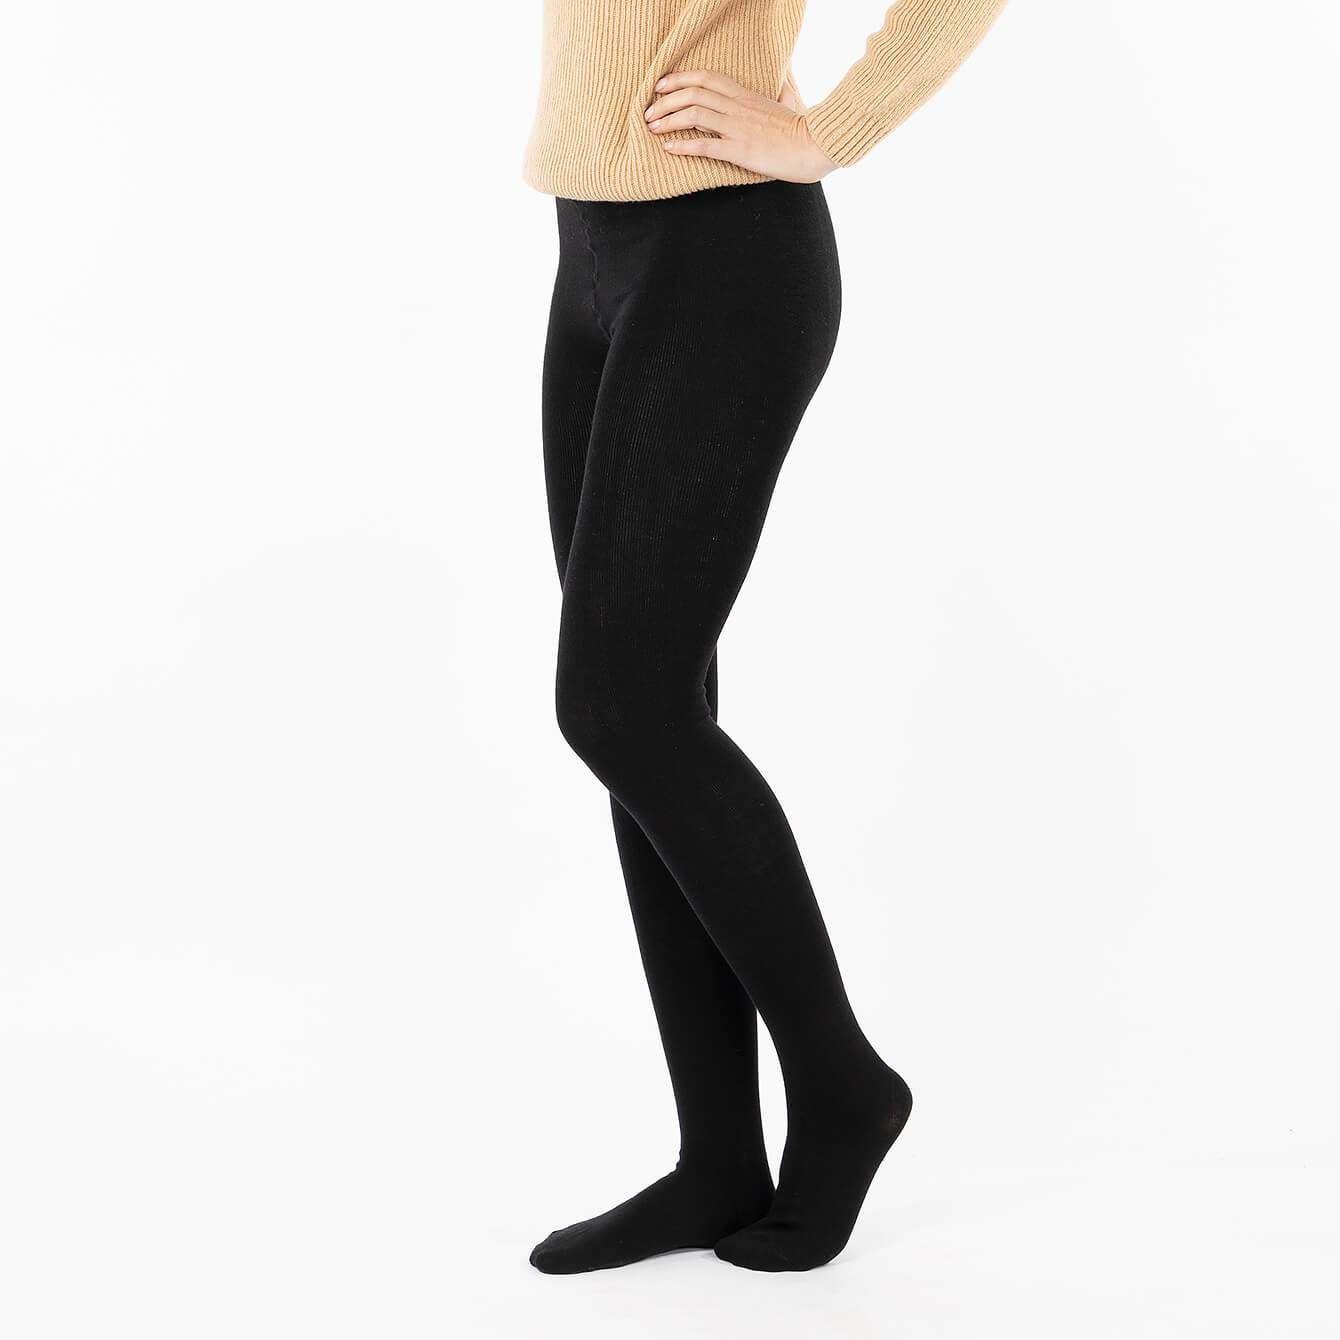 North Outdoor - Merino 60 Tights - Merino Wool - Weekendbee - sustainable sportswear